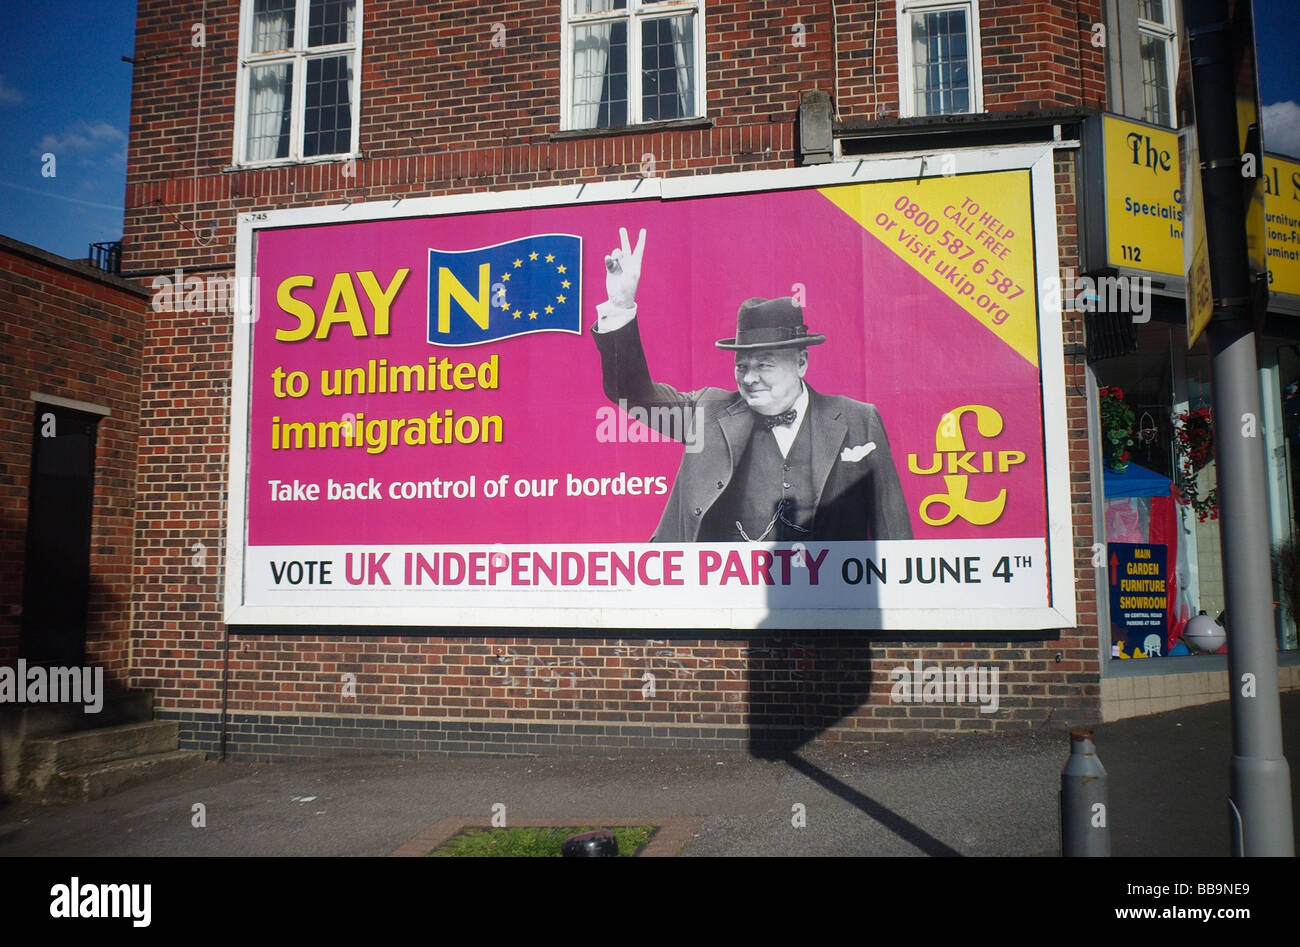 European election poster for the UK Independance Party - Stock Image